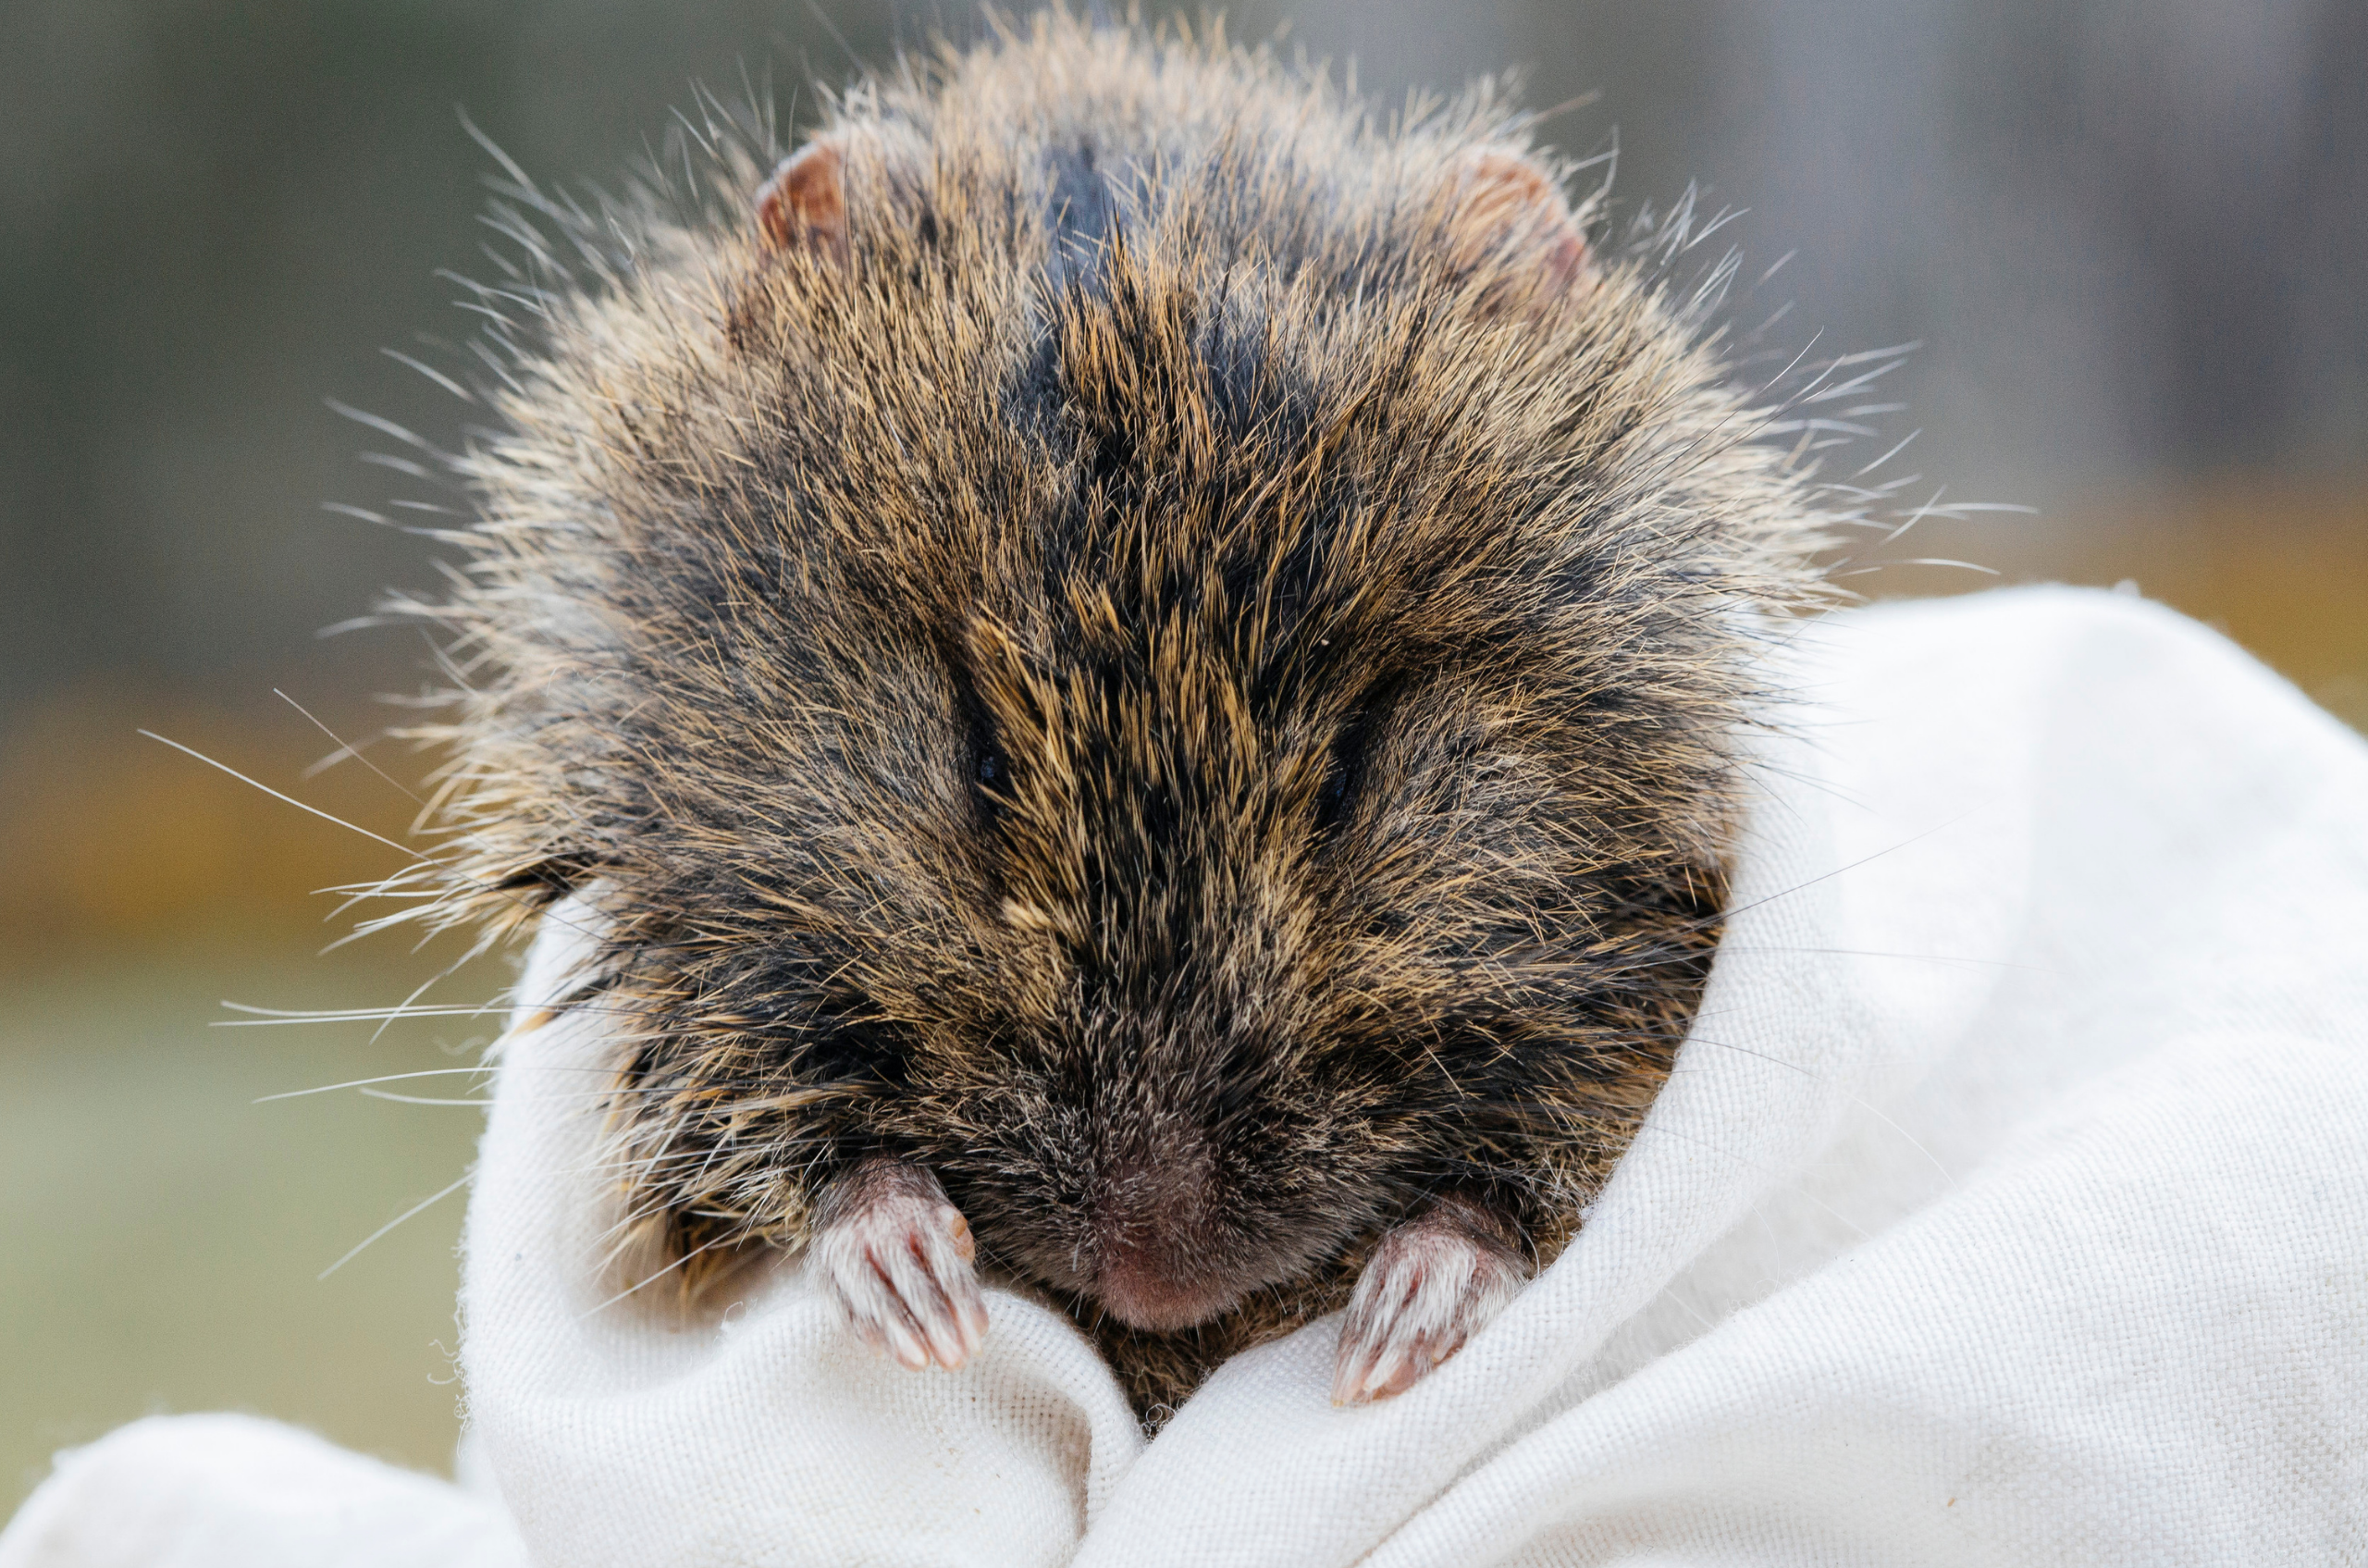 HELP SAVE THE BROAD-TOOTHED RAT!